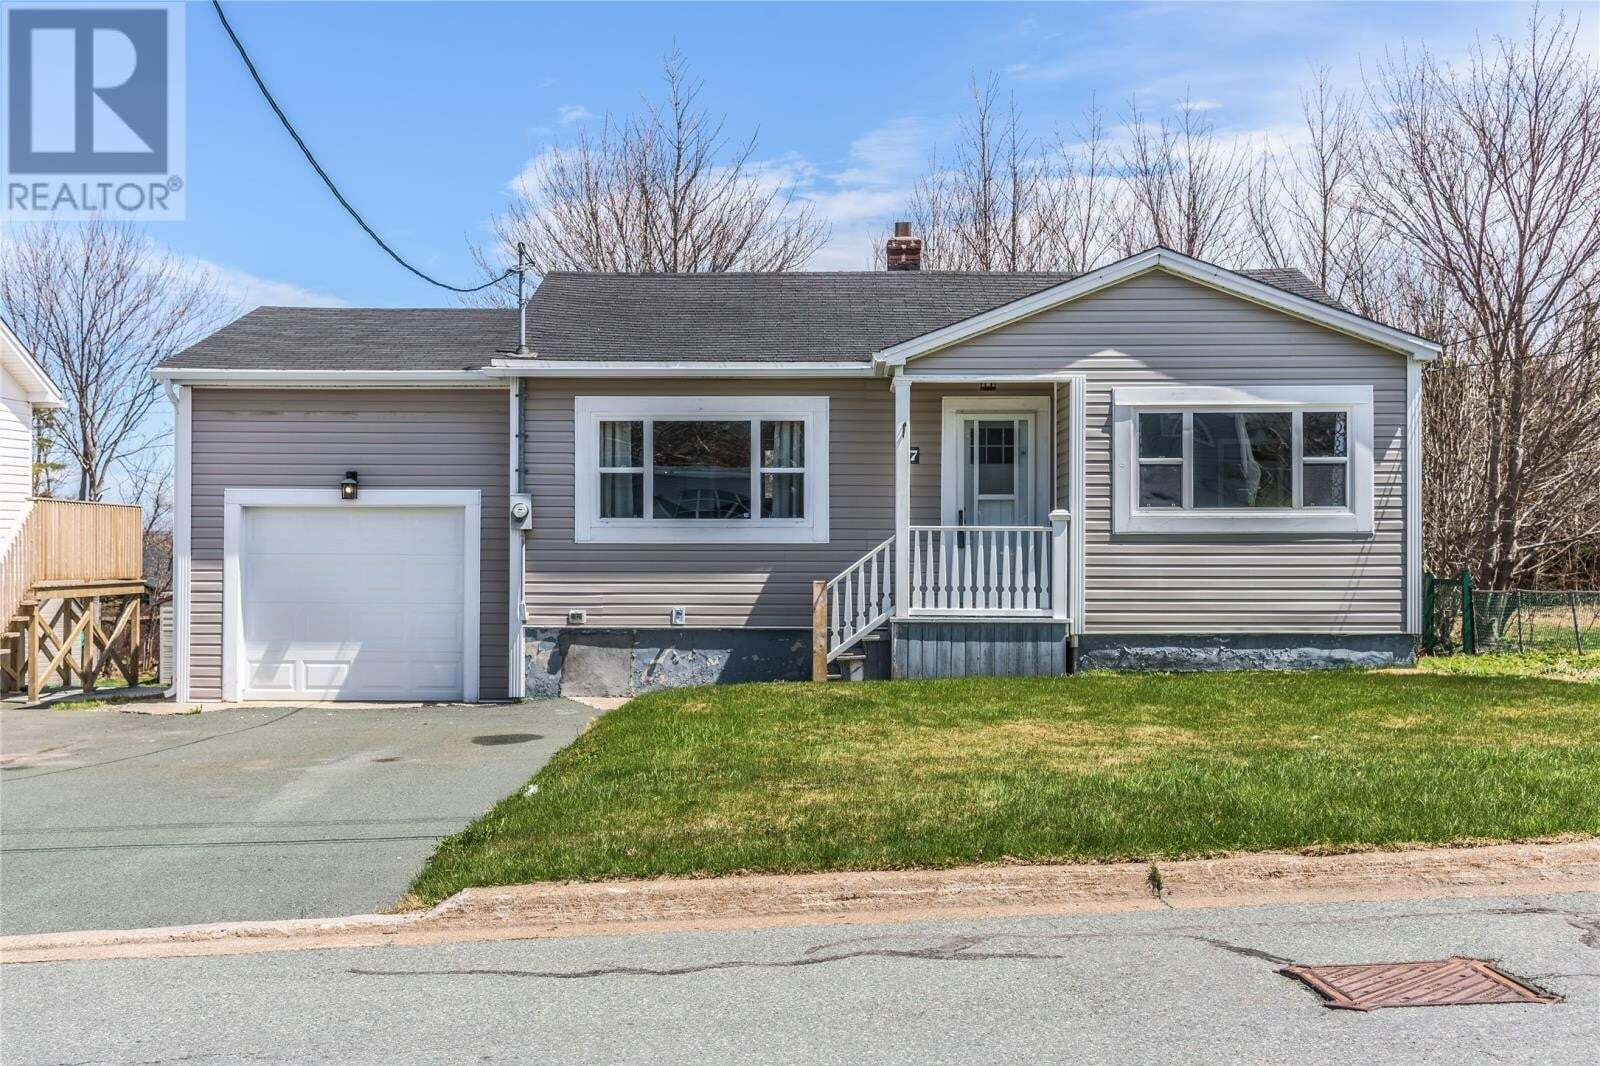 House for sale at 7 Penmore Dr Mount Pearl Newfoundland - MLS: 1213462